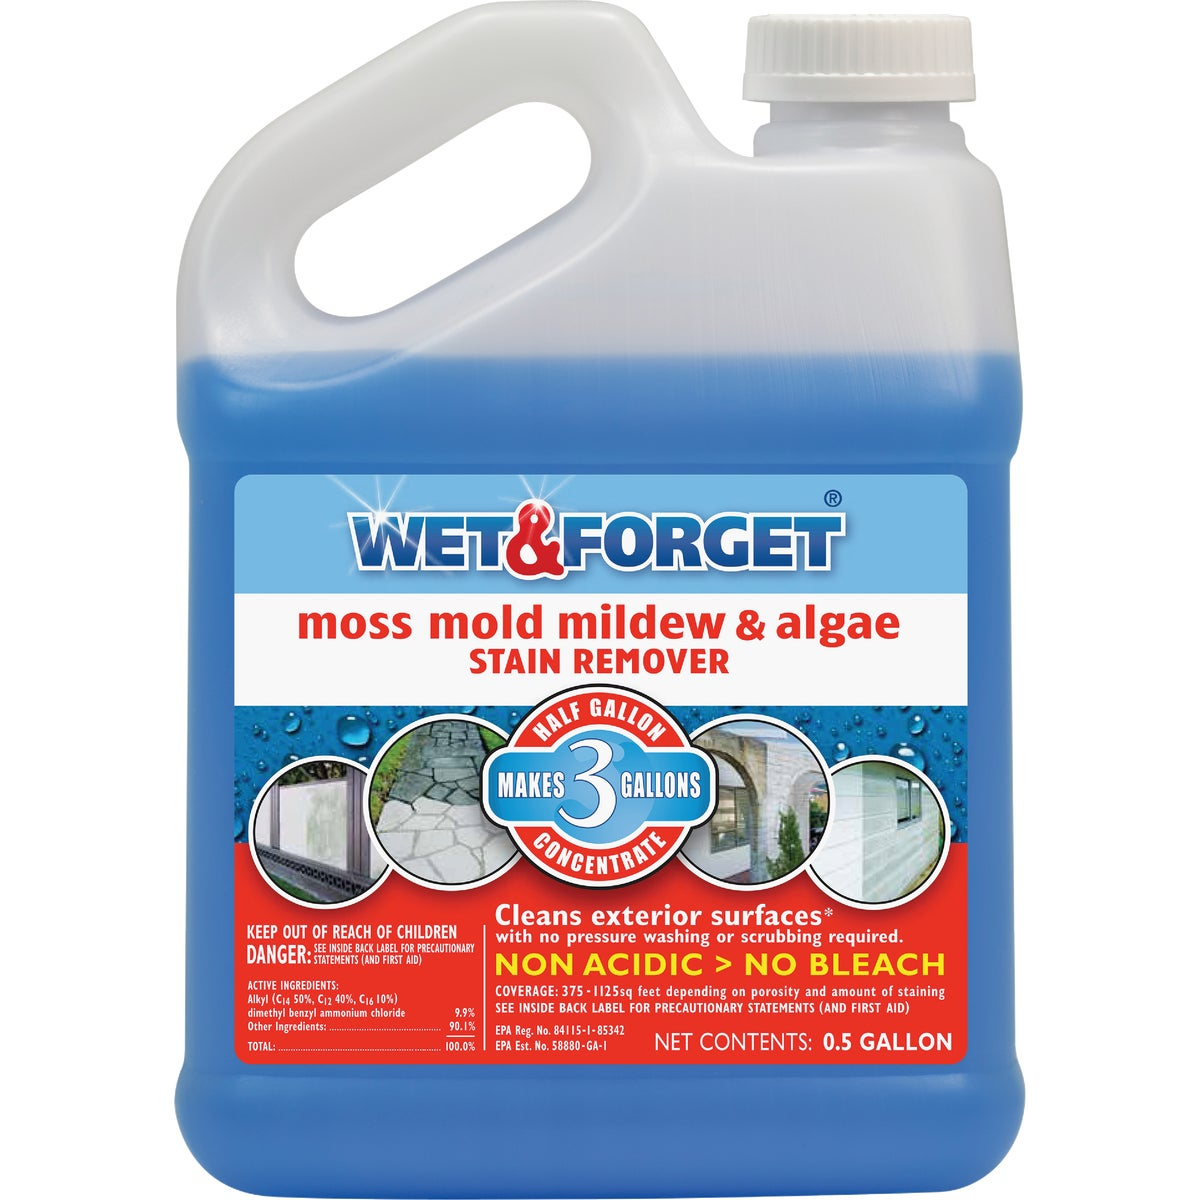 .5G MILDEW STAIN REMOVER